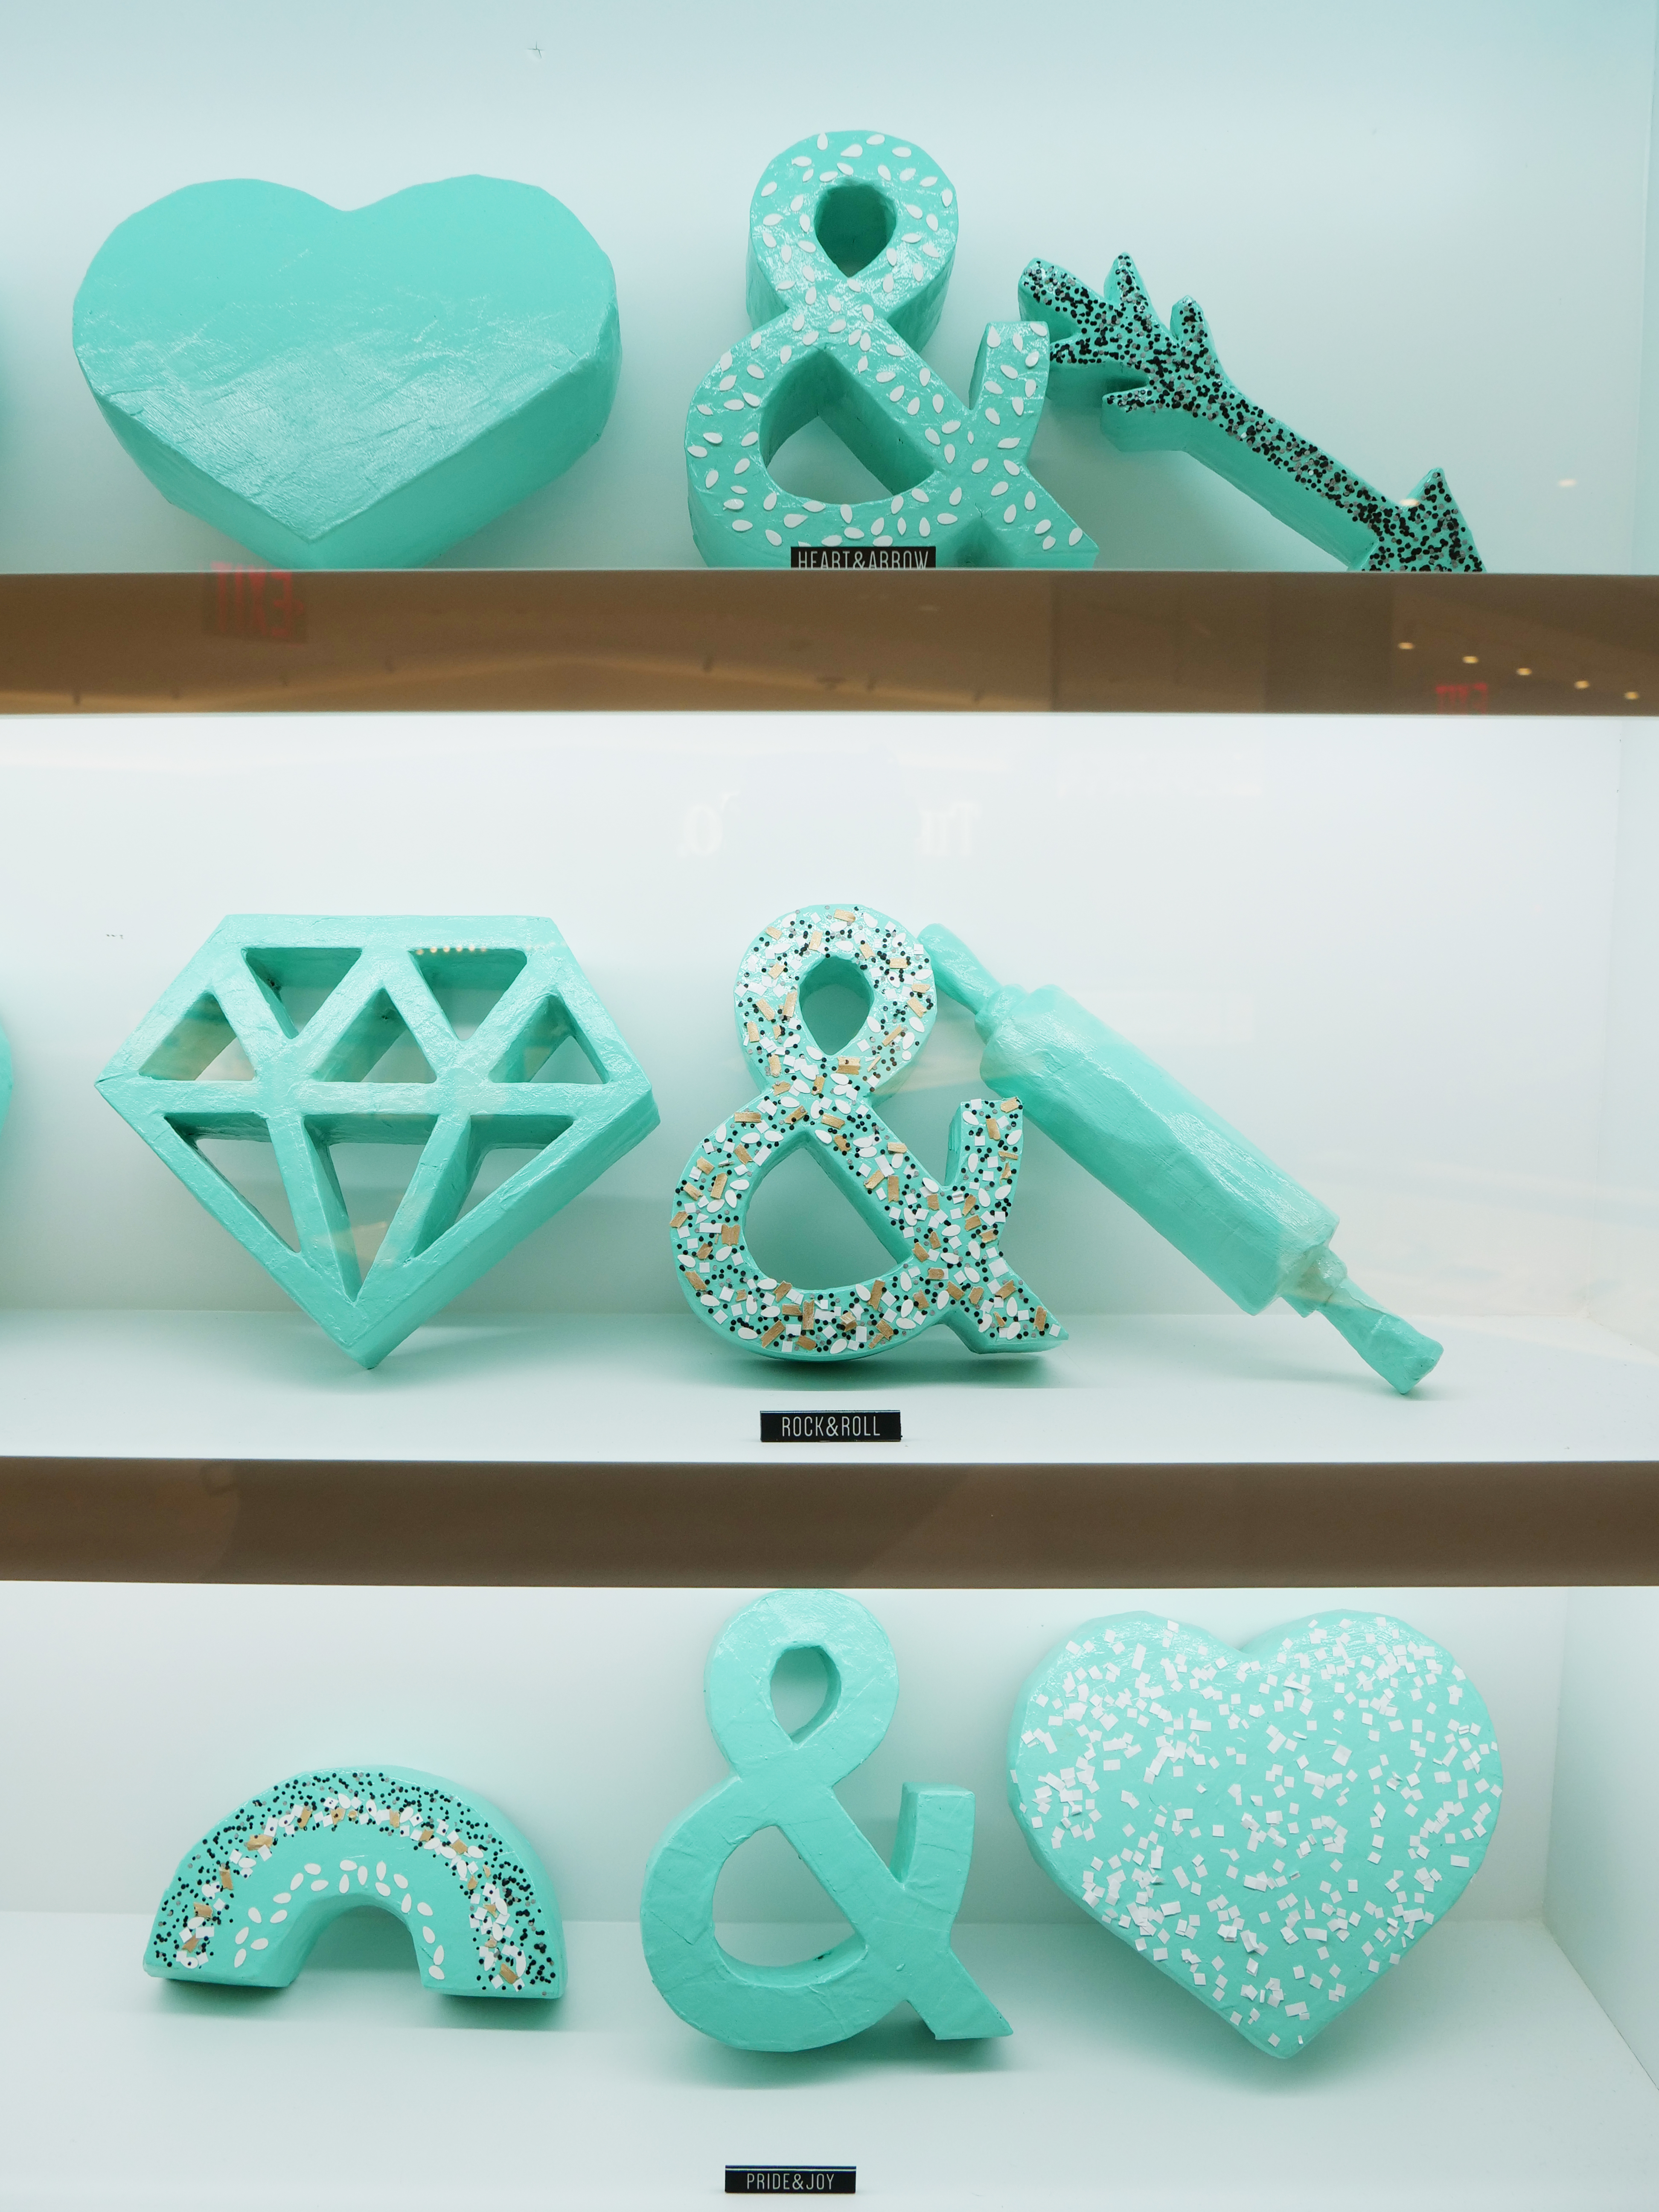 NYC Tiffany and Co Valentine's Day Subway Flower Installation pretzel cart pairing riddles